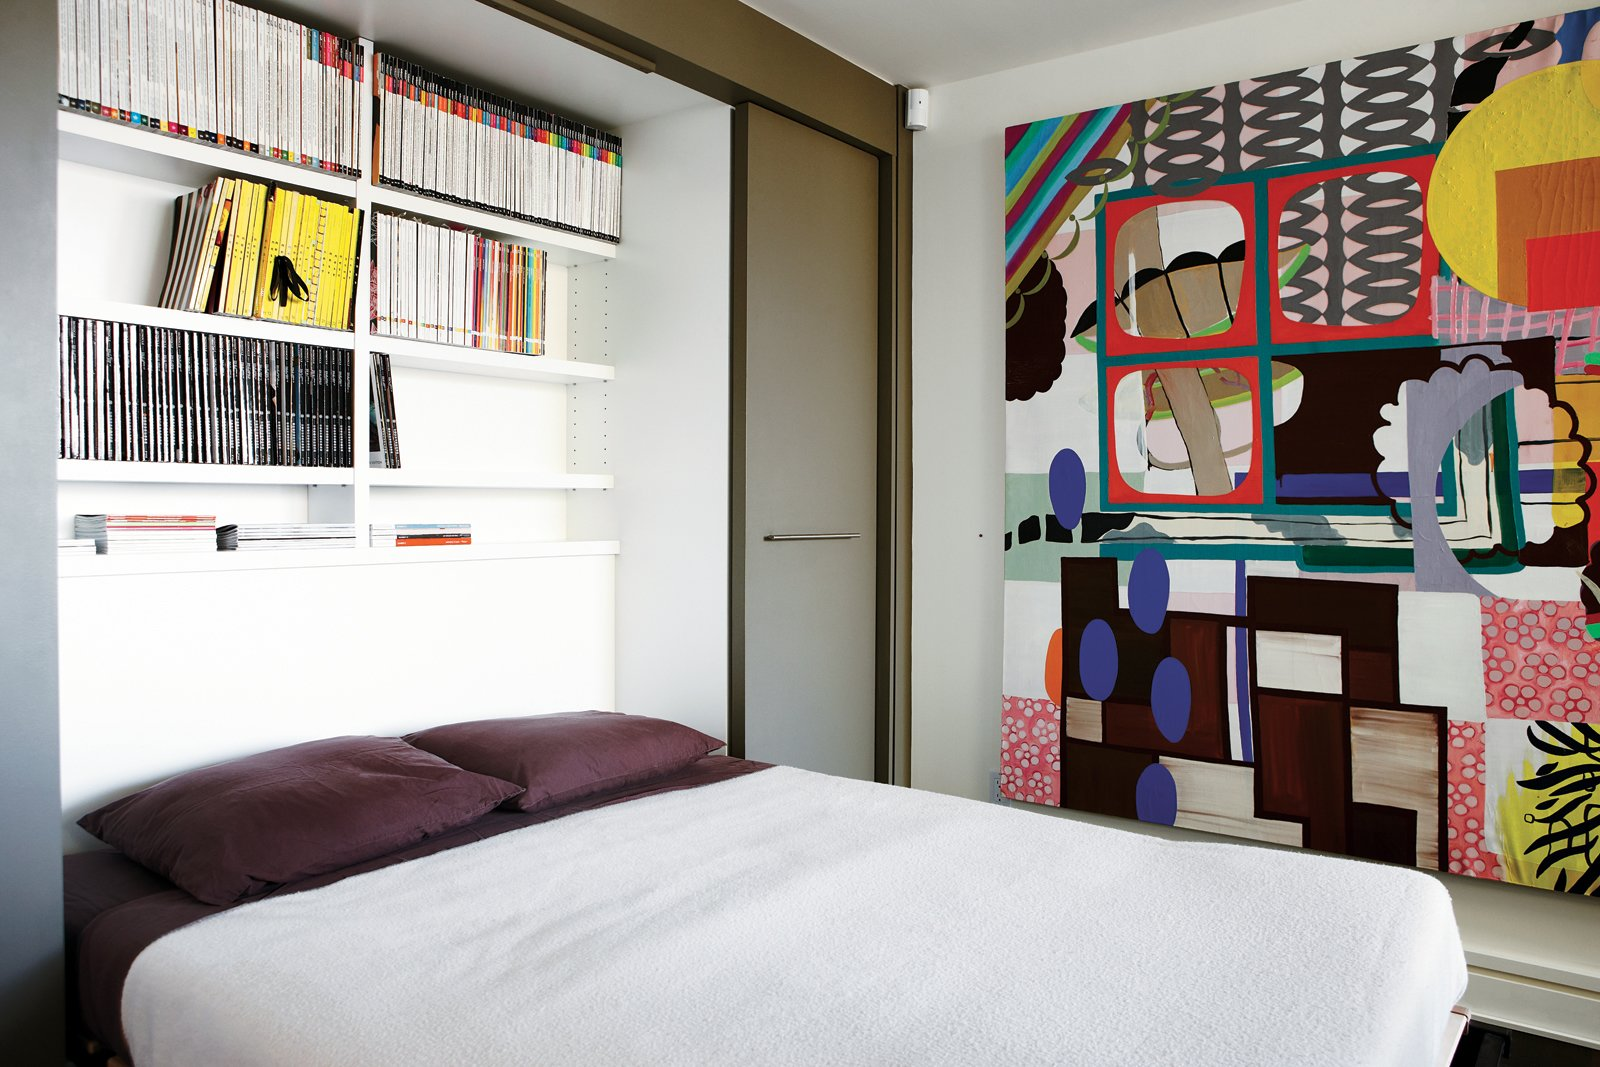 Bedroom, Bed, and Shelves Montague's office doubles as a guest room thanks to a Murphy bed that folds out to reveal shelves stocked with design magazines. The painting is Untitled (Corner Rainbow) by Elizabeth McIntosh.  Bedrooms by Dwell from Party-Friendly Apartment in Toronto